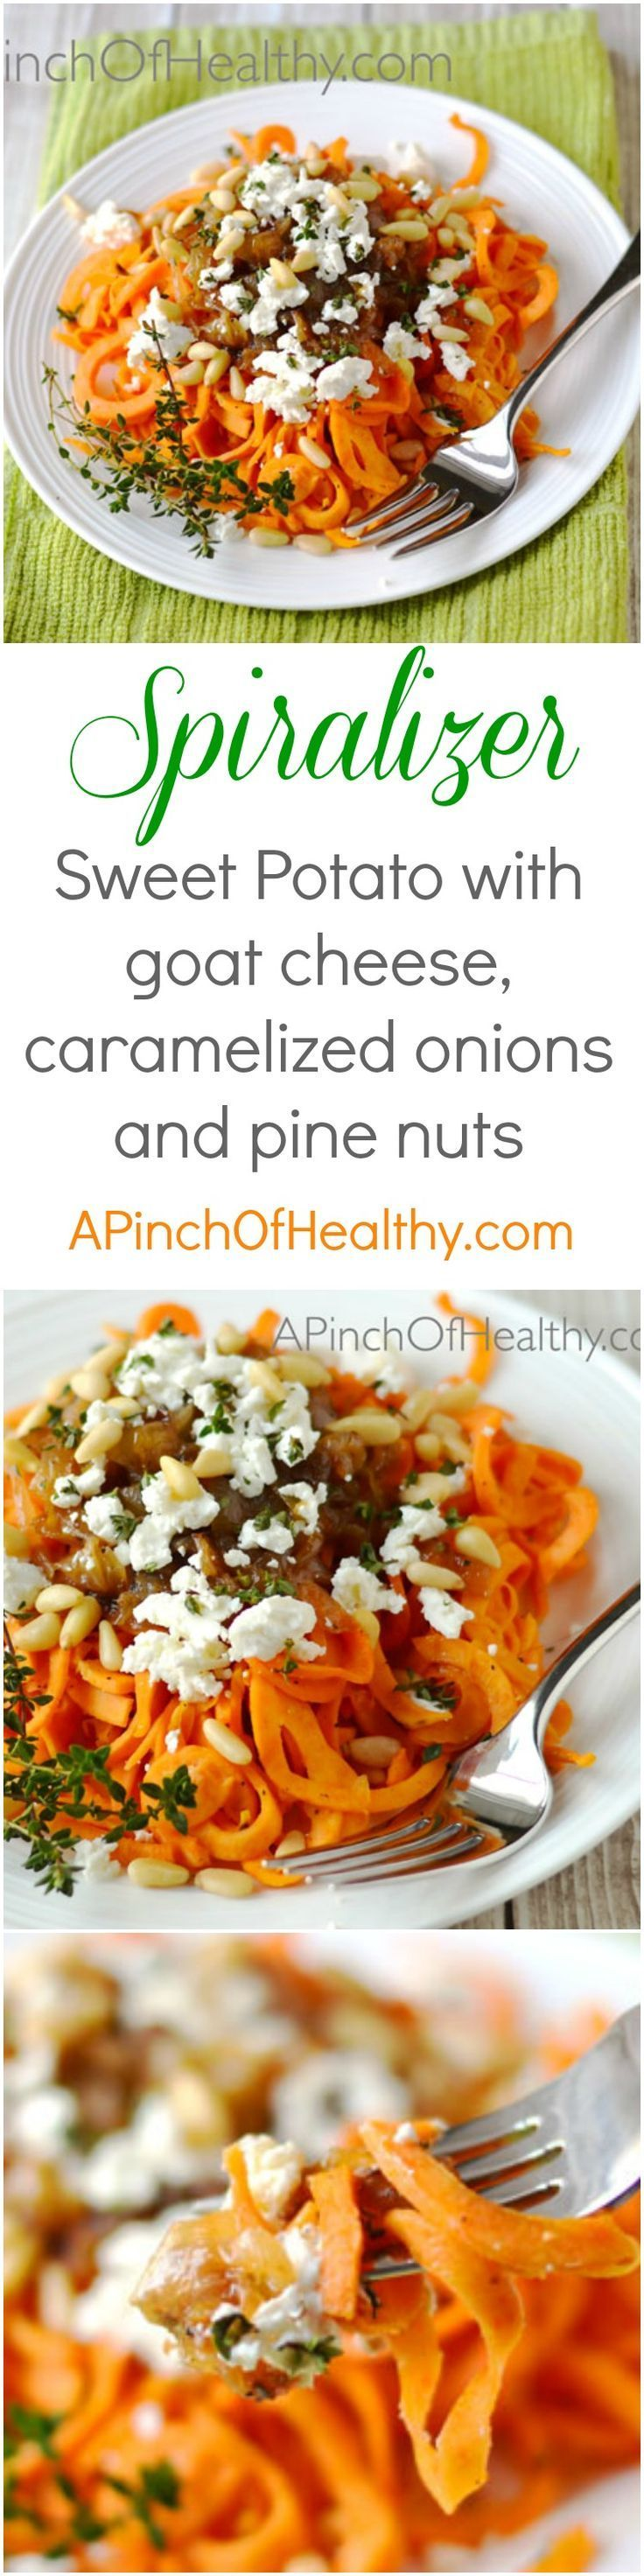 This spiralizer sweet potato with caramelized onion, goat cheese and pine nuts makes a killer side dish or vegetarian main dish that will knock your socks off.